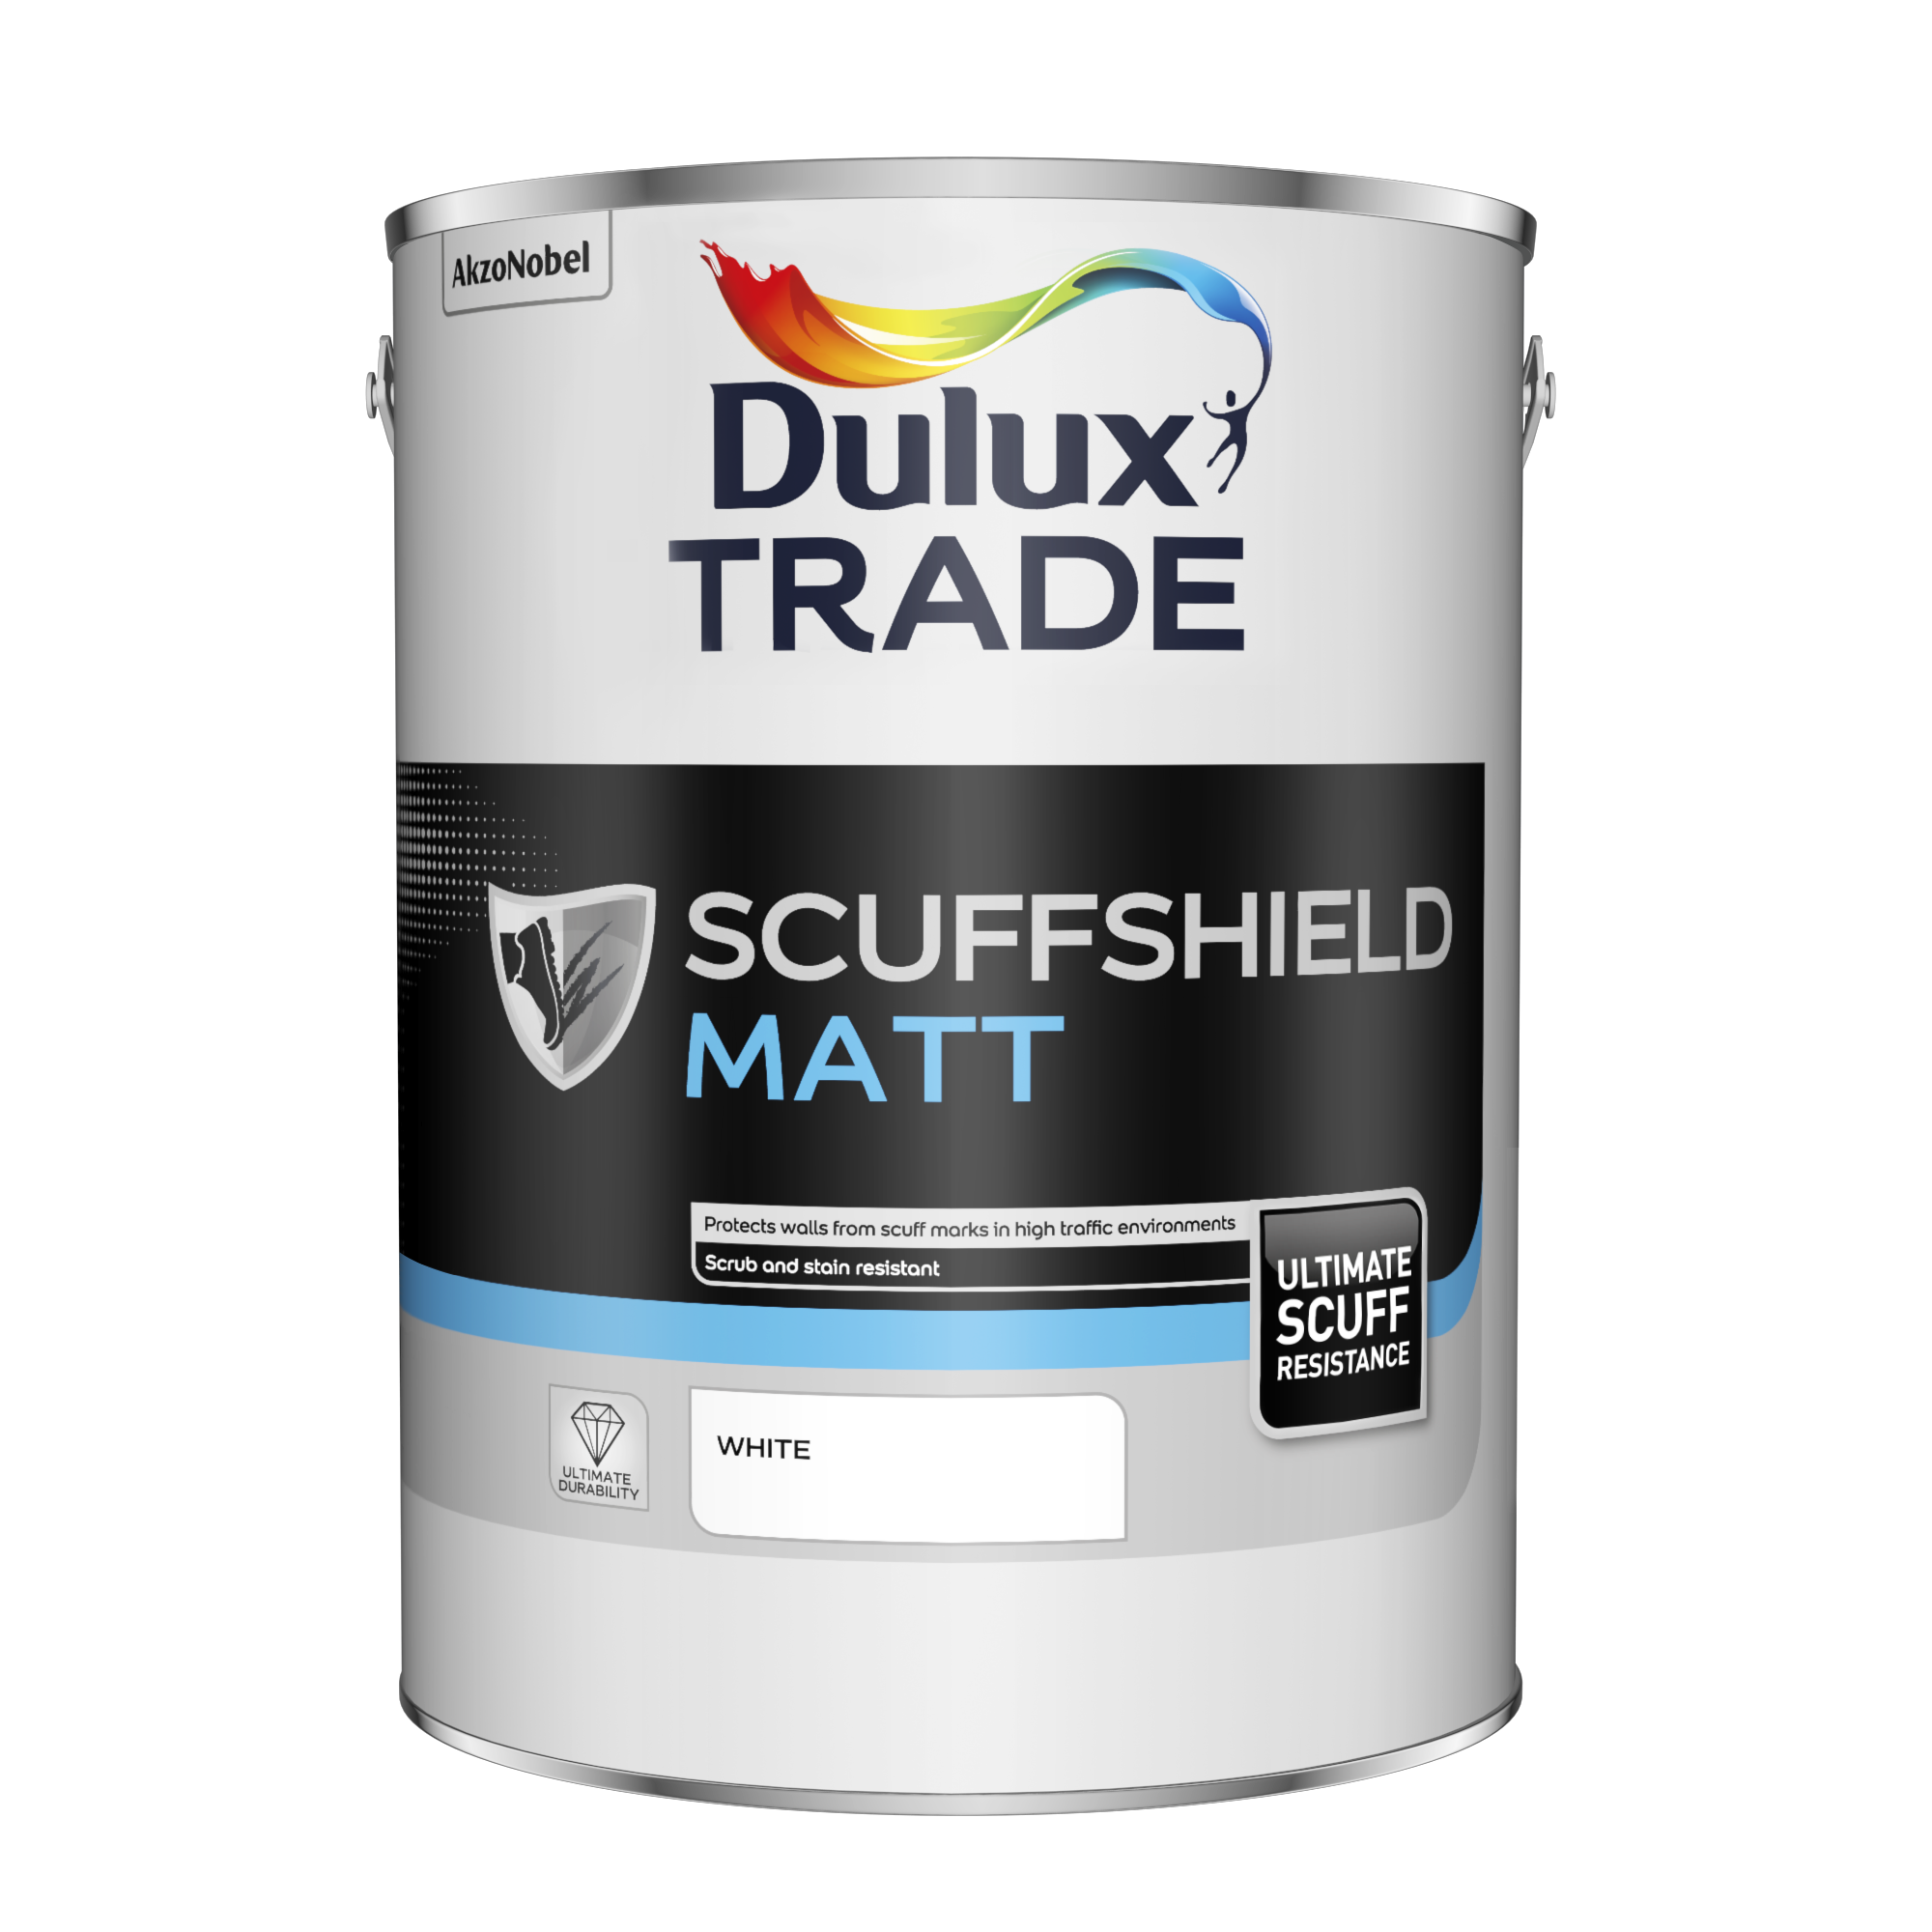 Dulux Trade Scuffshield Matt